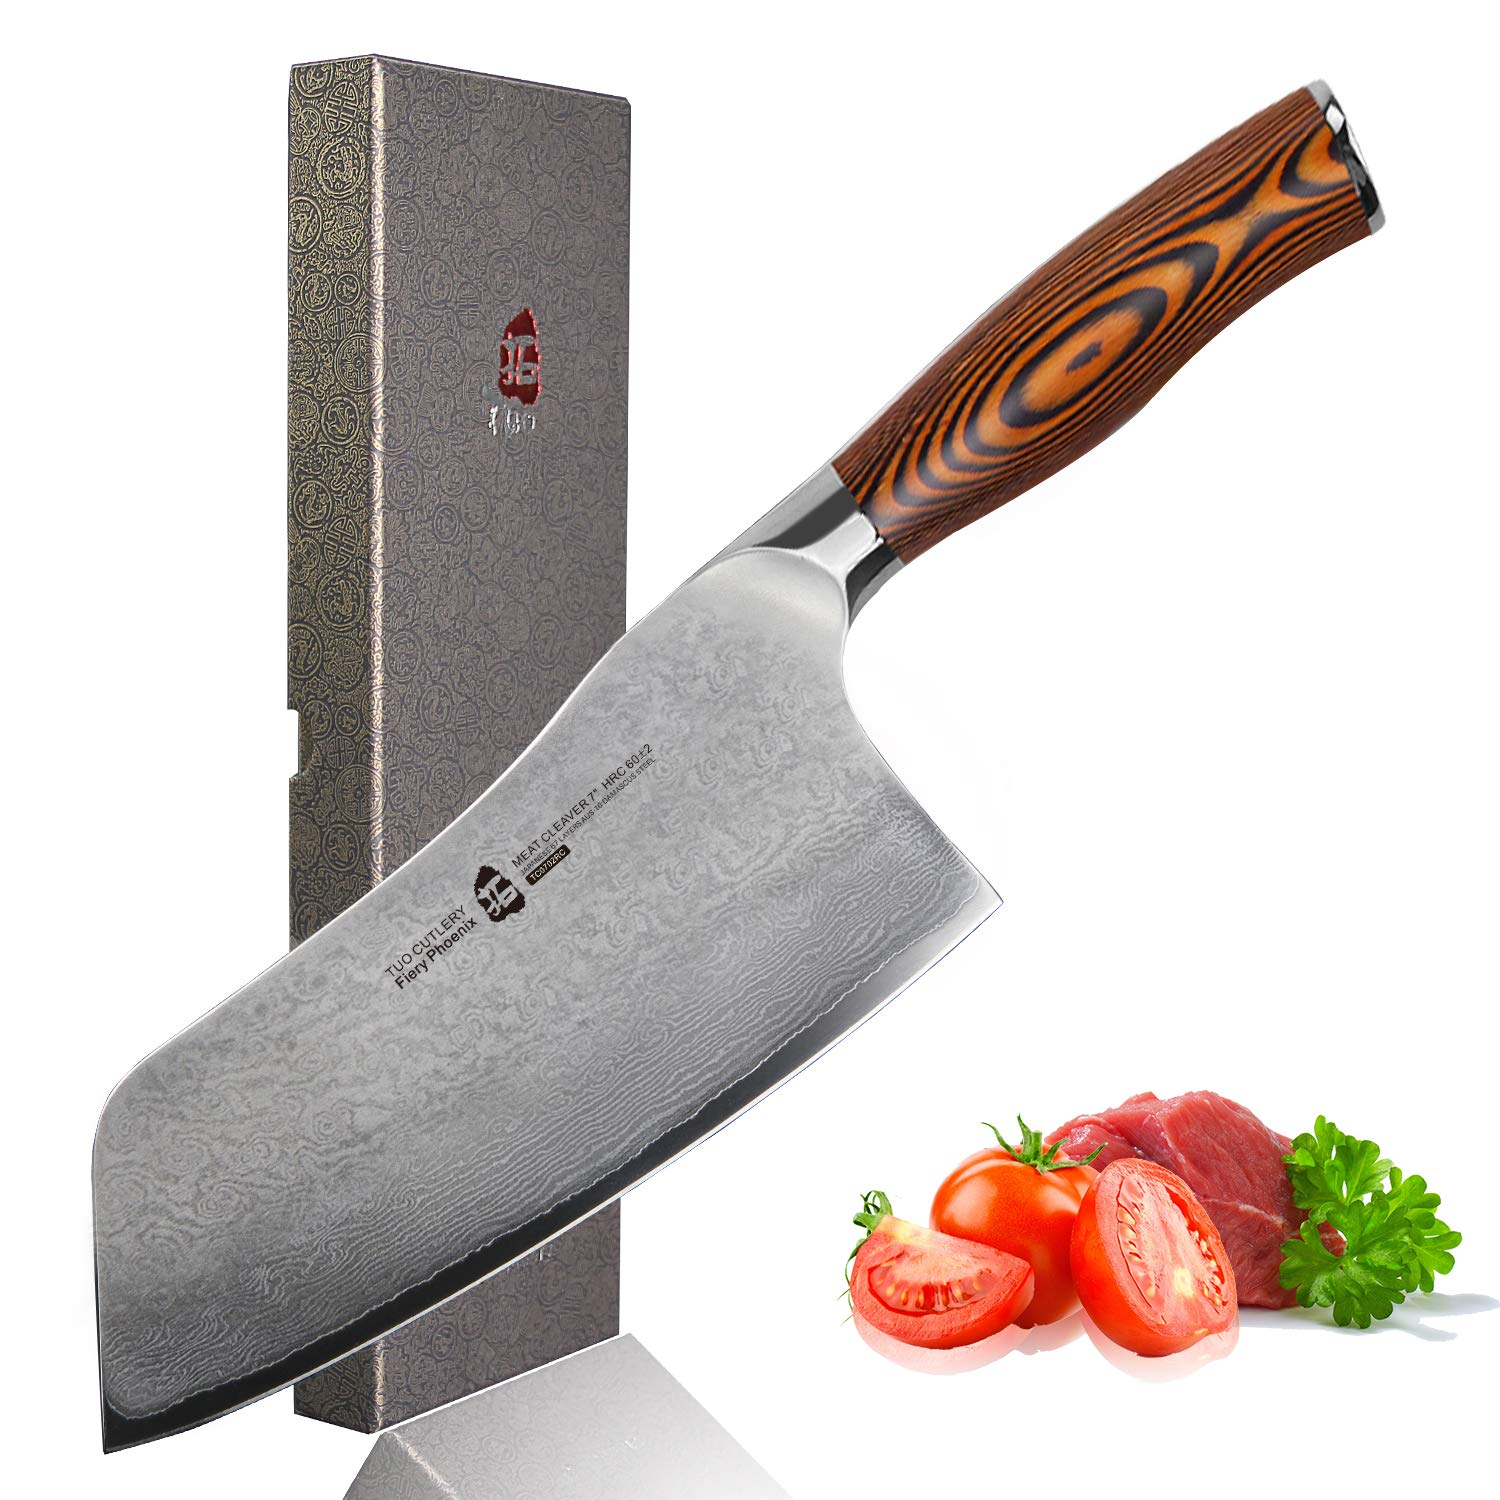 TUO Cutlery Cleaver Knife - Japanese AUS-10 67-Layers Damascus Steel - Chinese Chef's Knife For Meat And Vegetable With Ergonomic Pakkawood Handle - 7'' - Fiery Series